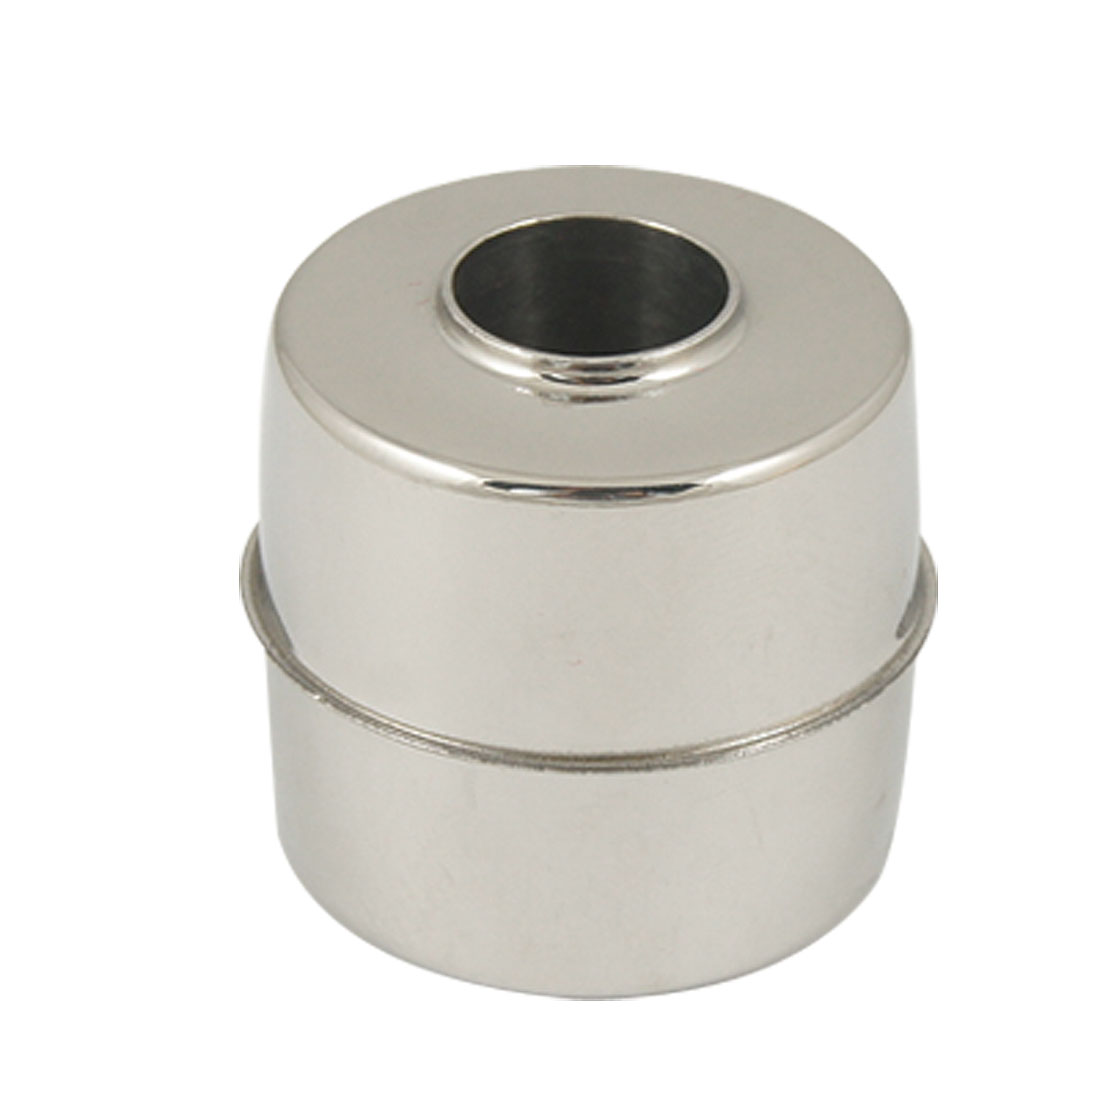 Water Level Sensor Magnetic Stainless Steel Float Ball 24mmx24mmx9.5mm